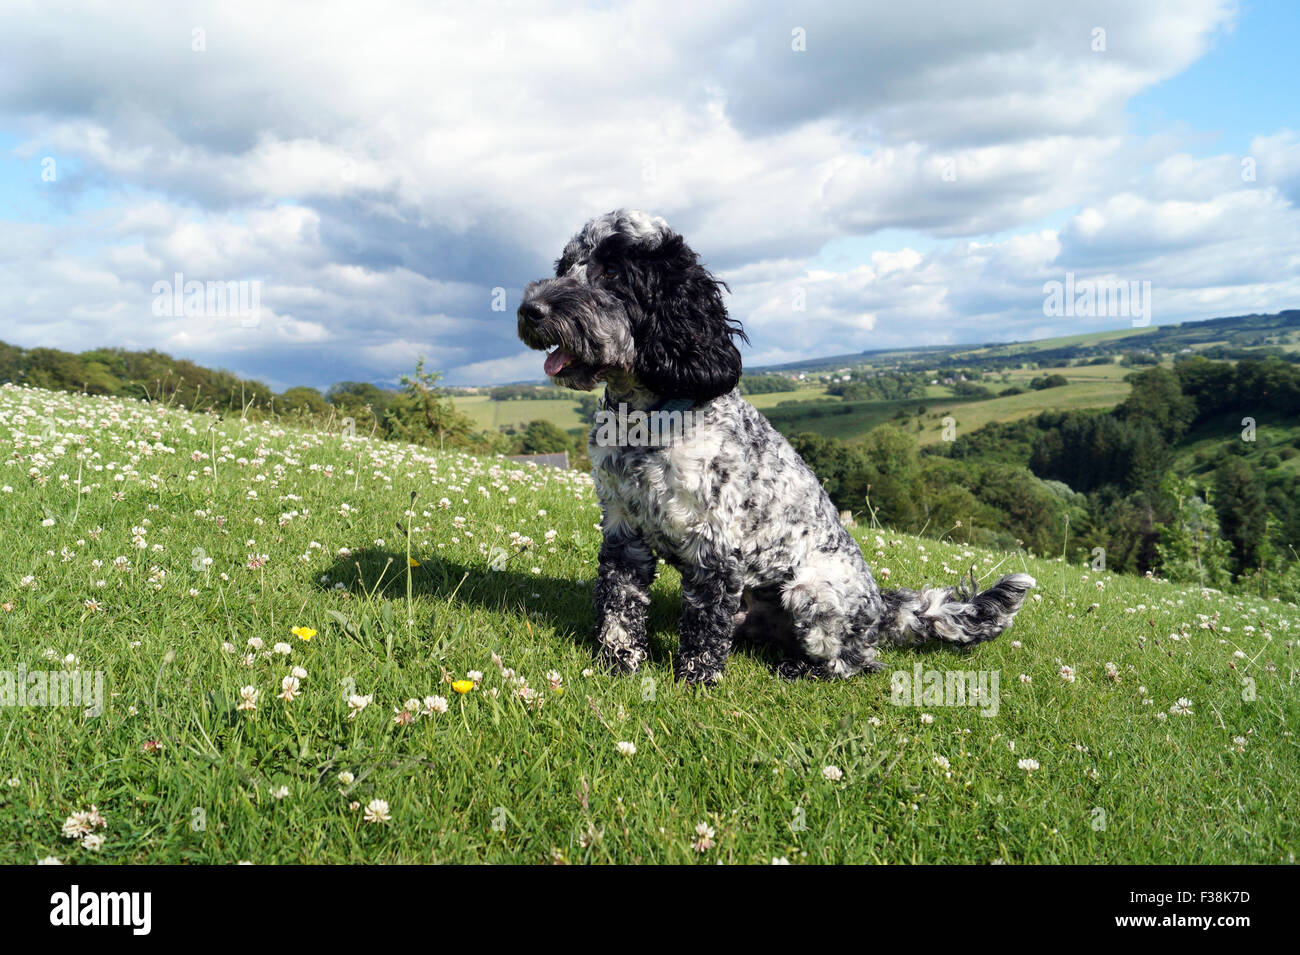 Cute Black & White Cockapoo in Park with Grassy background - Stock Image